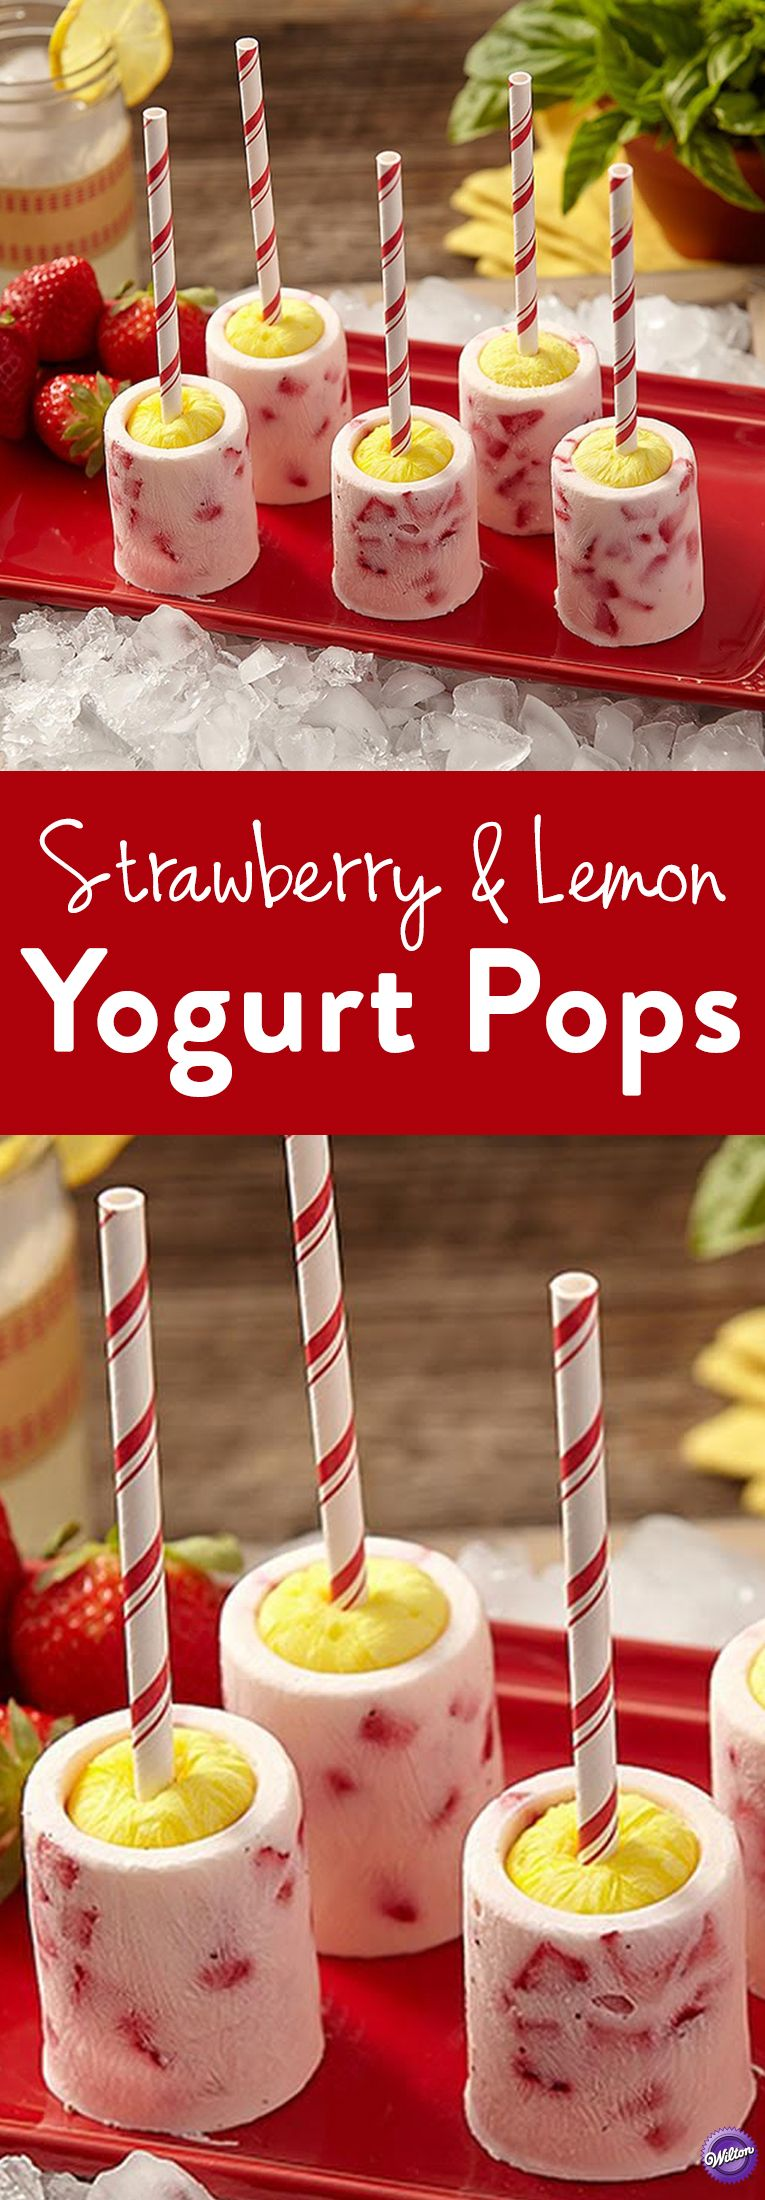 How to Make Strawberry and Lemon Yogurt Pops - These layered frozen novelties are as fun to make as they are to eat, especially on hot summer days! The outer ring is full of chopped berries and a hint of basil. The inner ring packs sweet, lemony flavor. Greek yogurt is rich and tangy, and lets the other flavors shine through. Whip up a batch of these yogurt pops and store them in your freezer for a healthy treat.